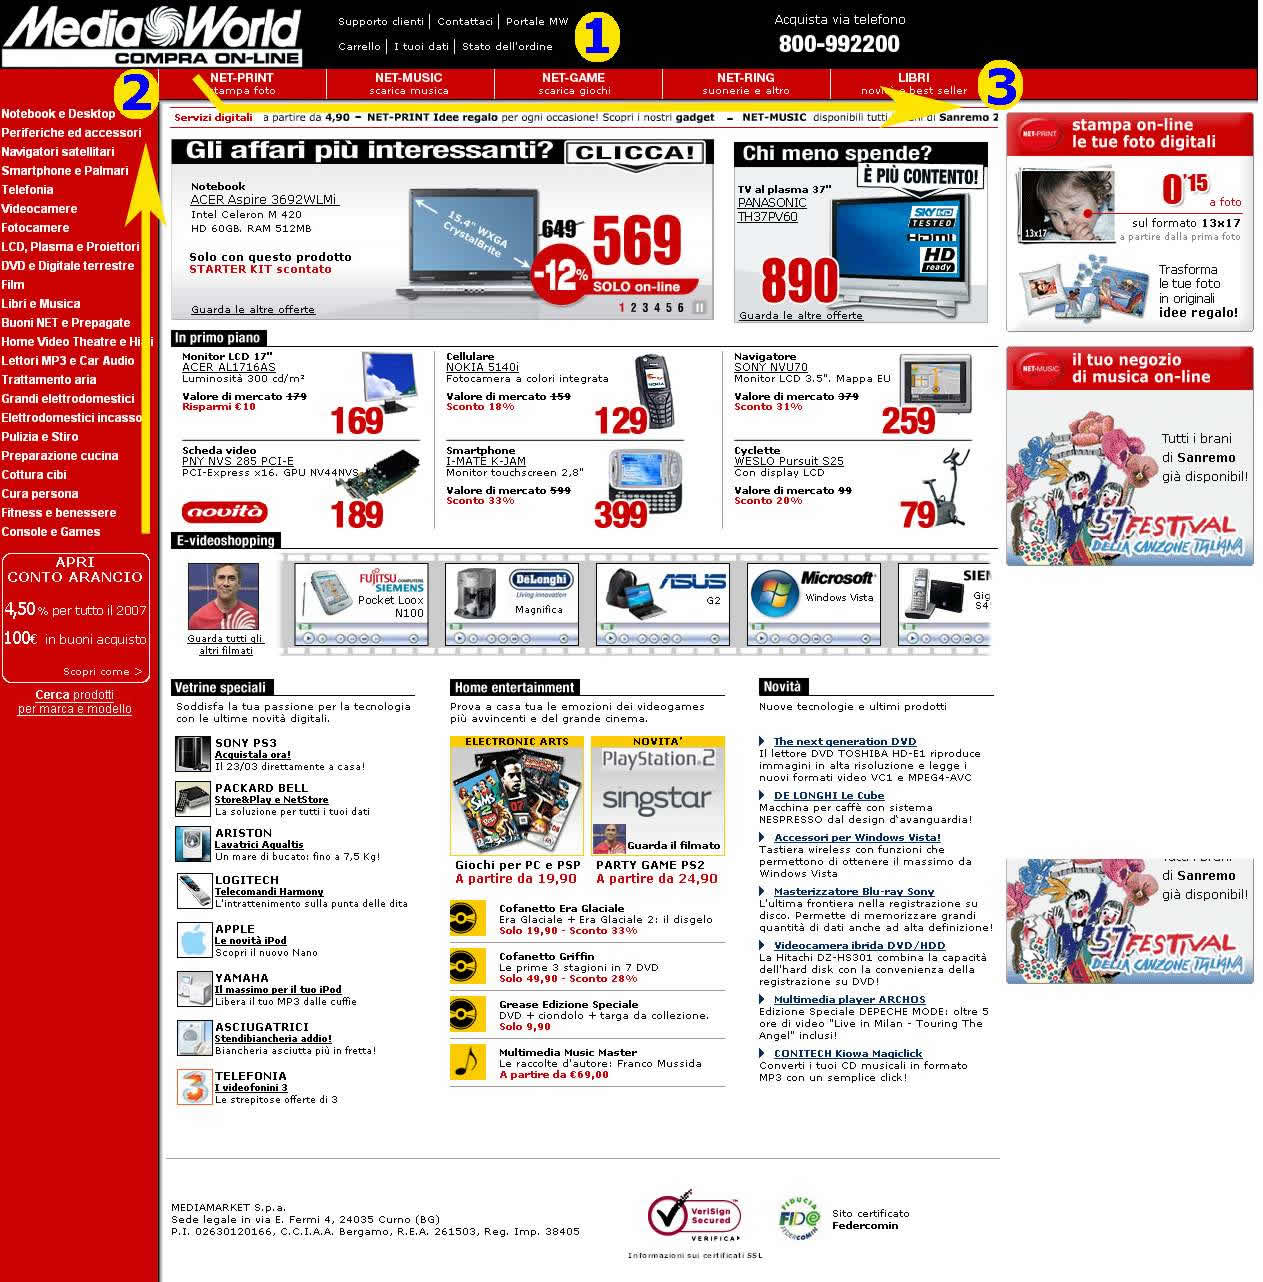 La home page di Mediaworld